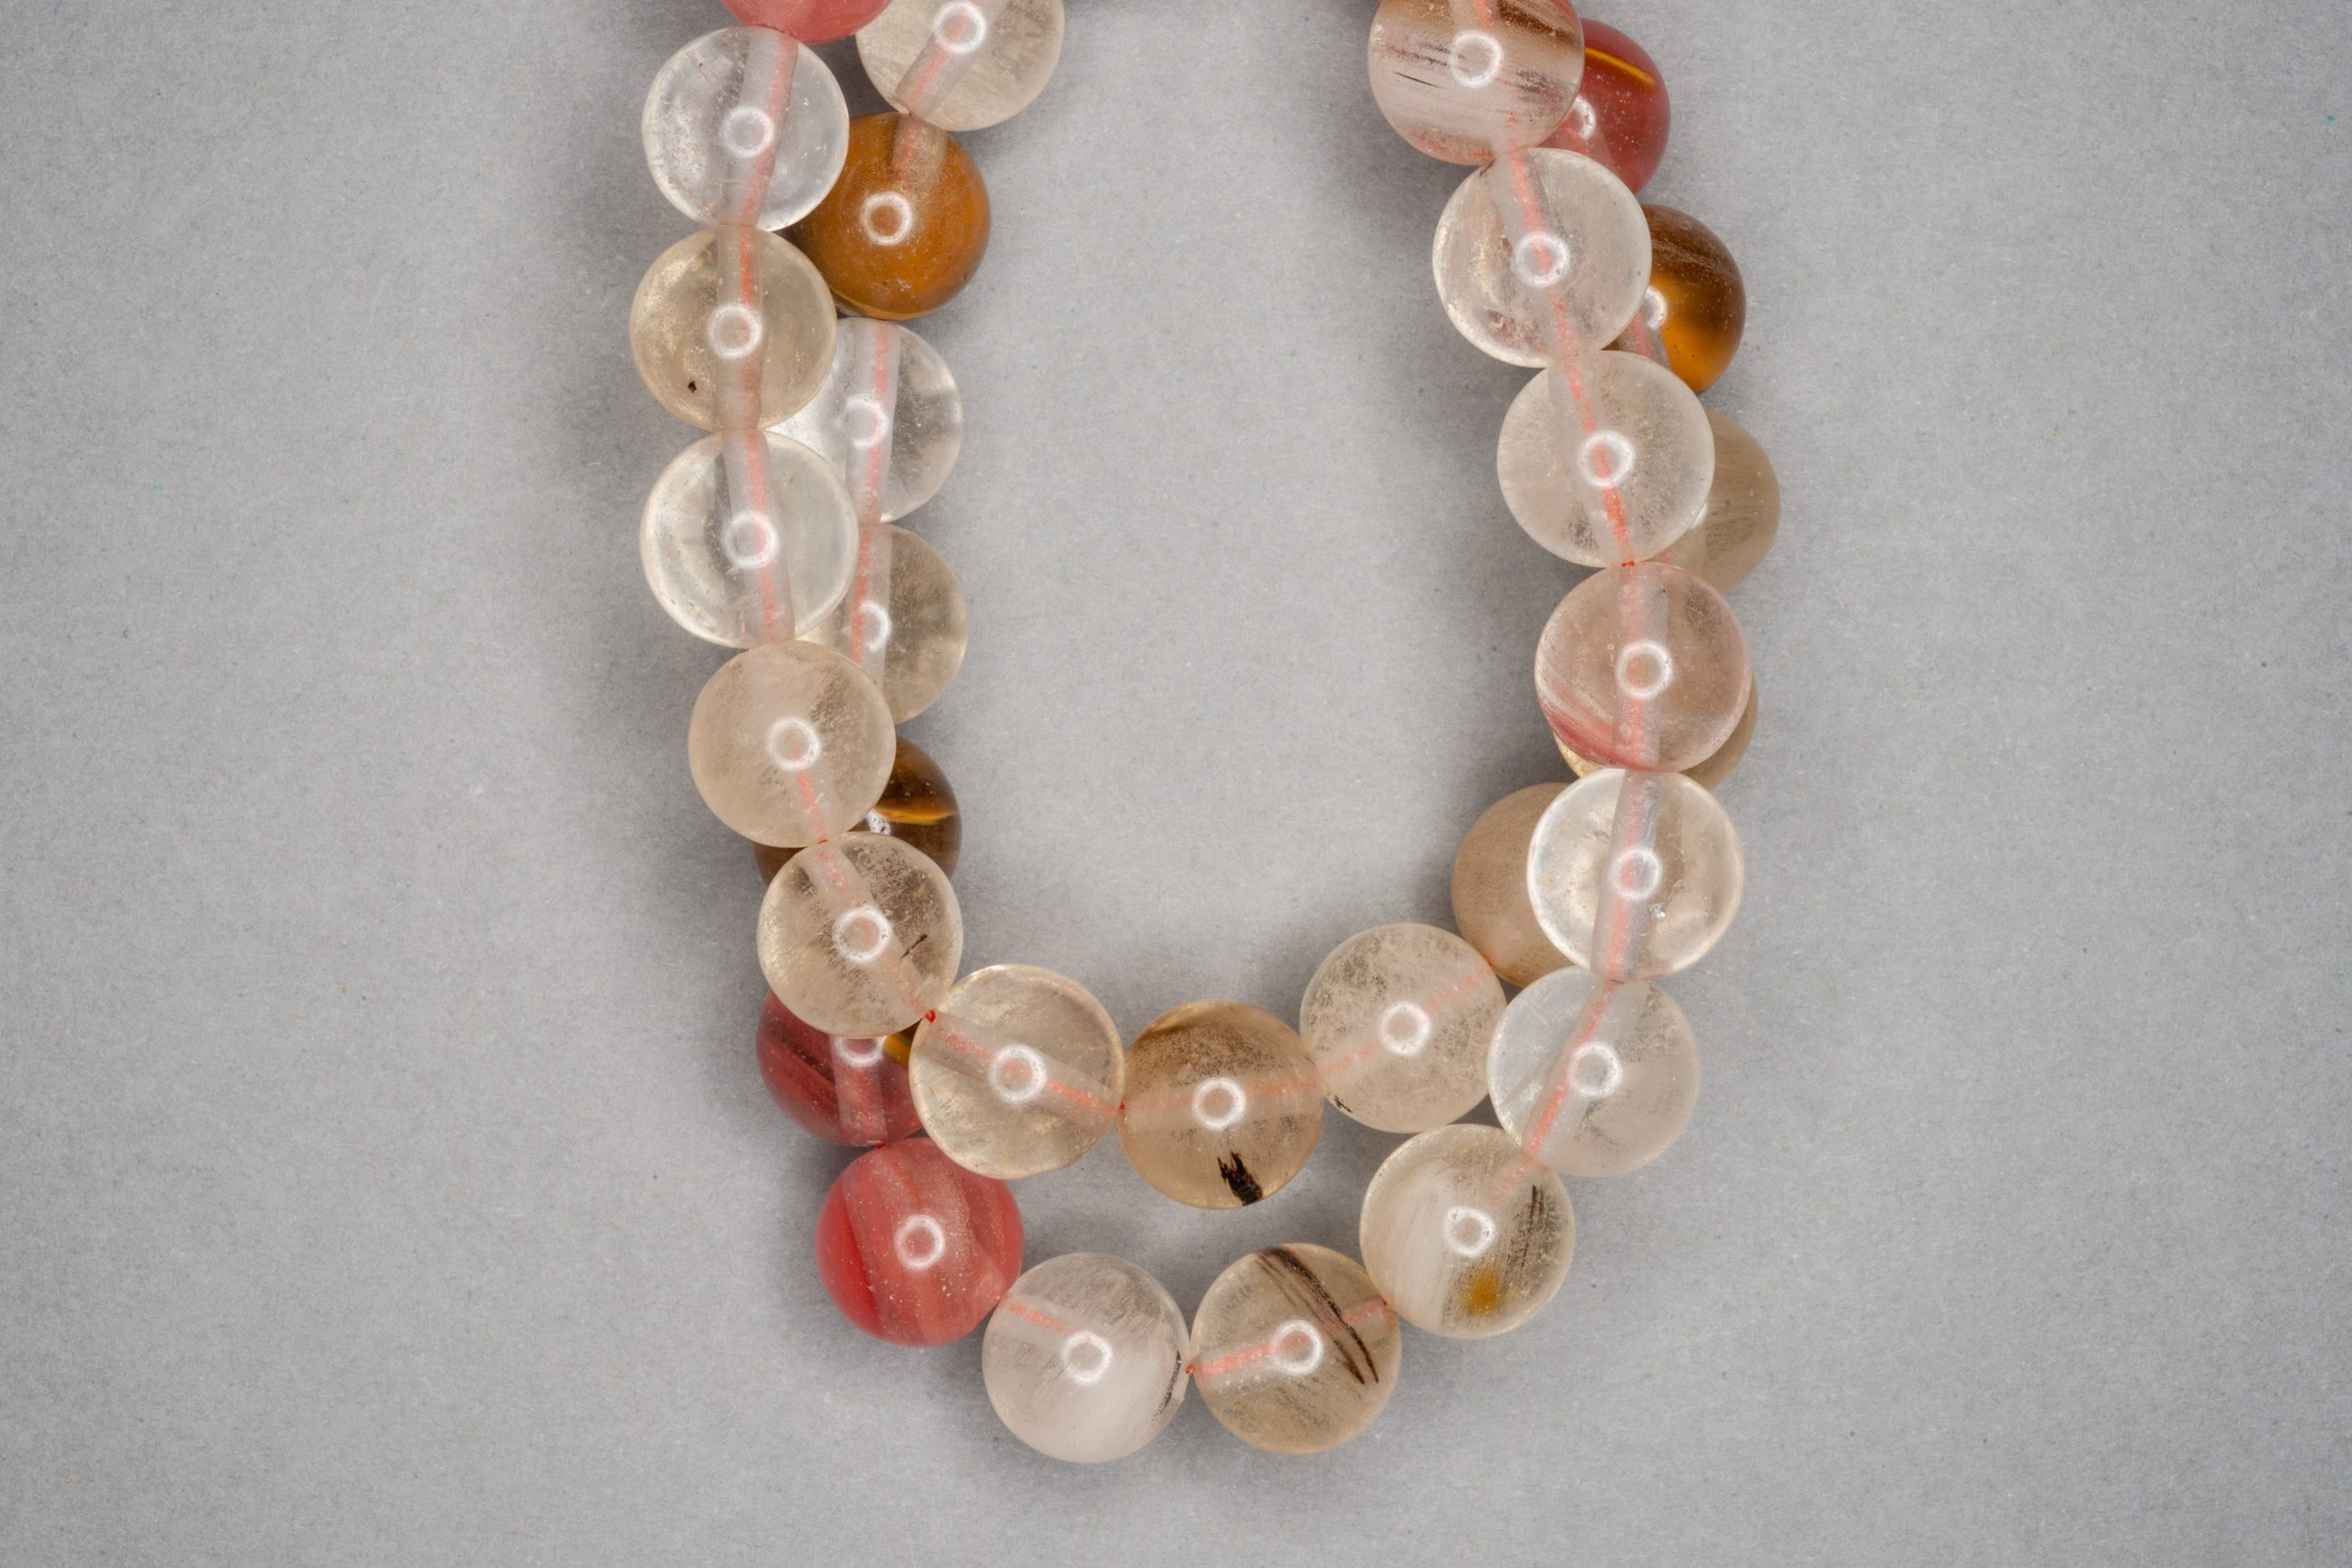 Watermelon Quartz 38cm Strand, 10mm Round